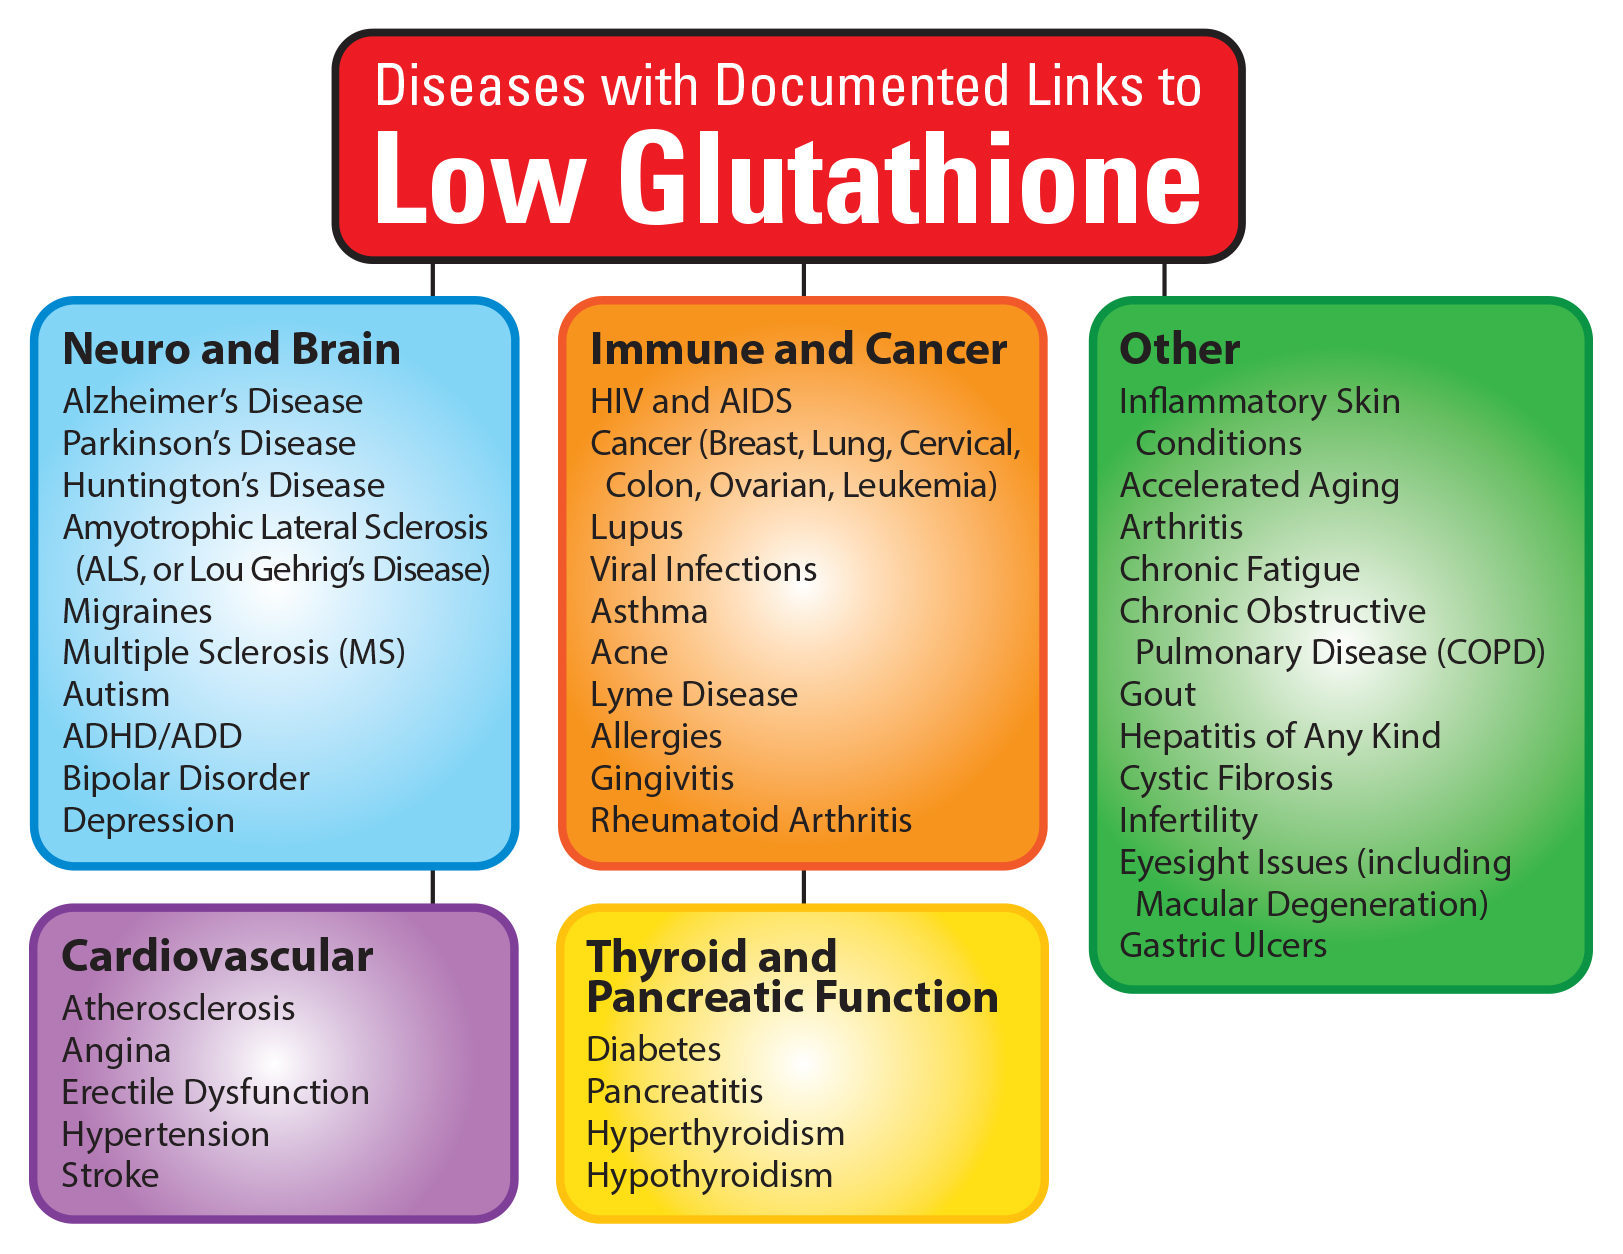 benefits of glutathione Glutathione is an antioxidant produced in cells it's comprised largely of three amino acids: glutamine, glycine, and cysteine glutathione levels in the body may be reduced by a number of.